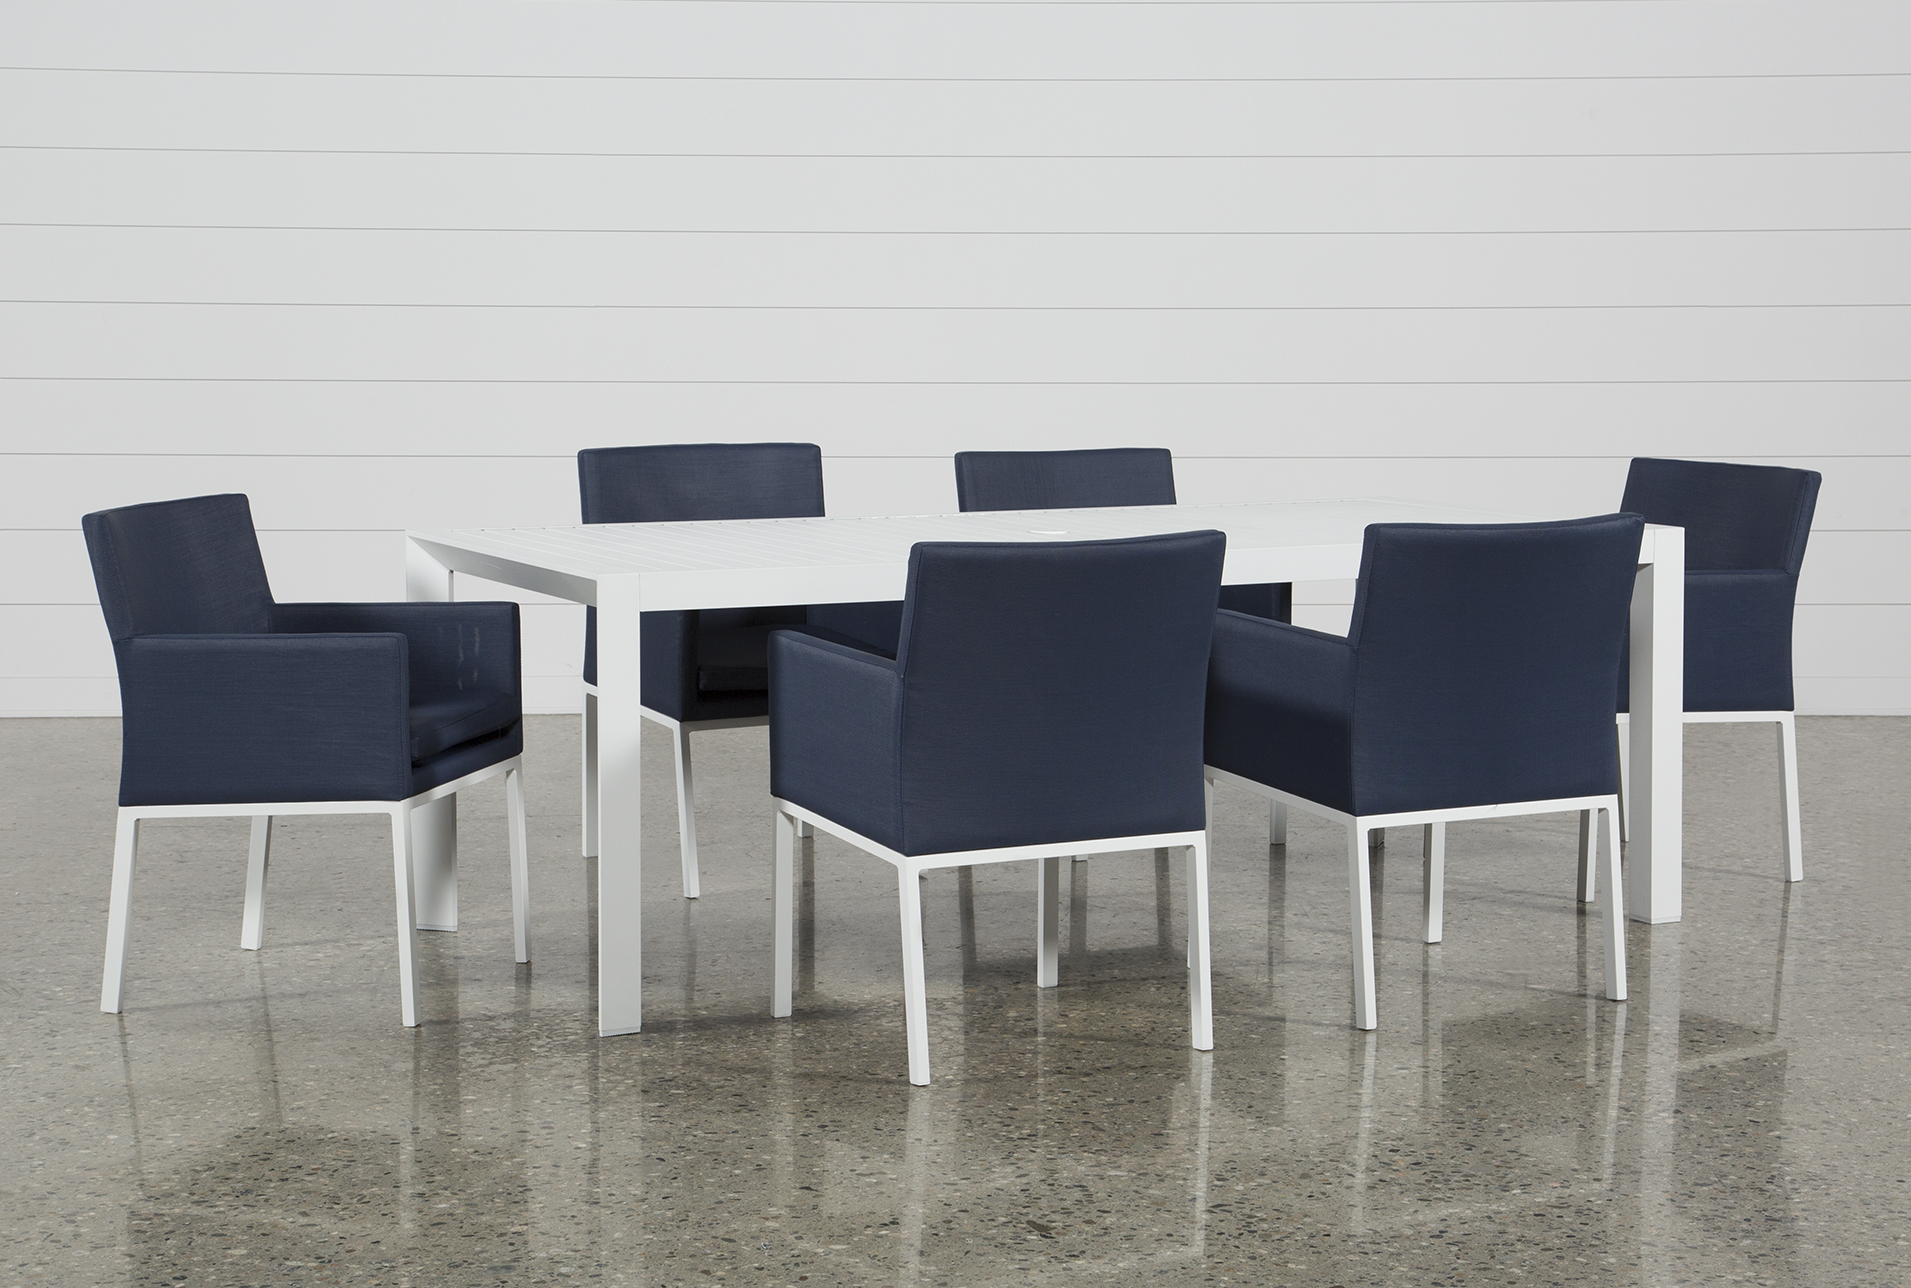 Outdoor Biscayne II Dining Table With 6 Upholstered Dining Chairs (Qty: 1)  Has Been Successfully Added To Your Cart.